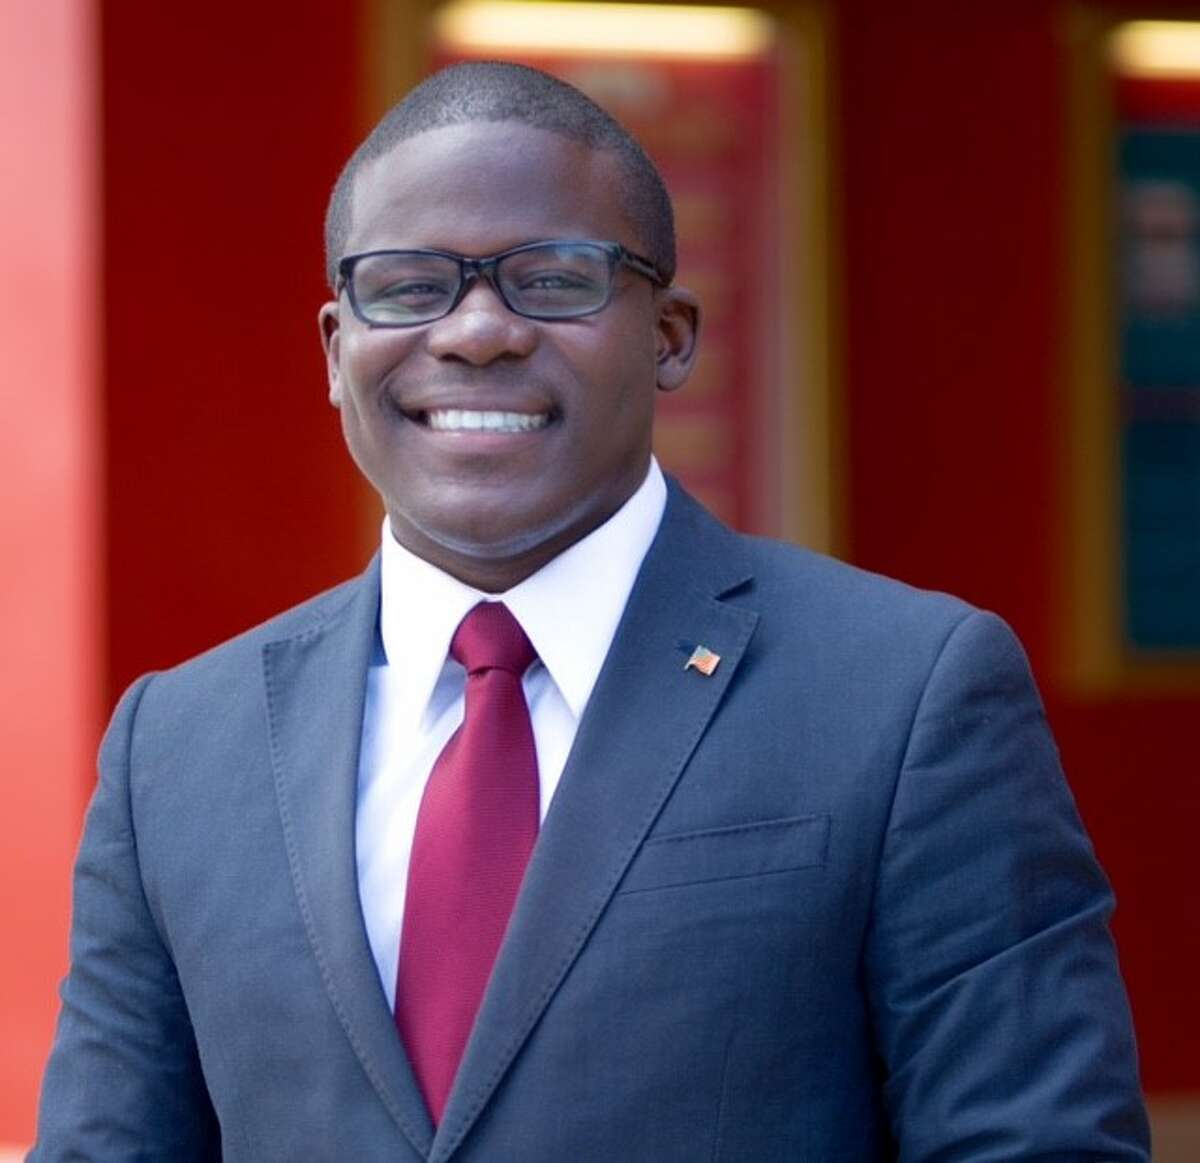 Owusu Anane was elected to the Albany Common Council on Nov. 7, 2017. (Photo provided)